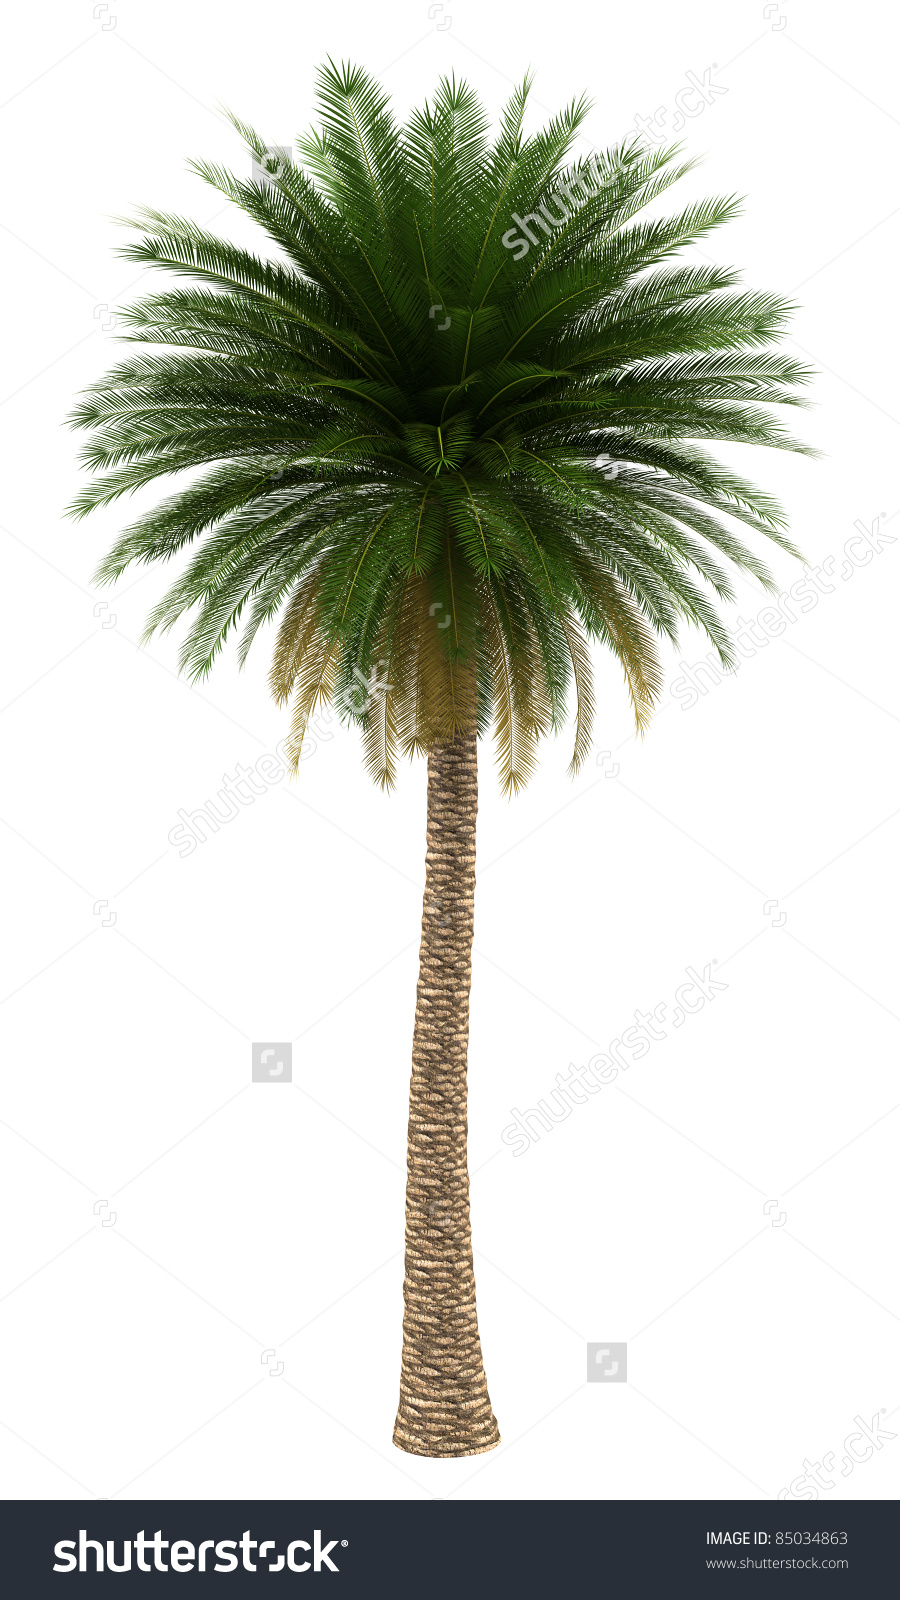 Canary Island Date Palm Tree Isolated On White Background Stock.